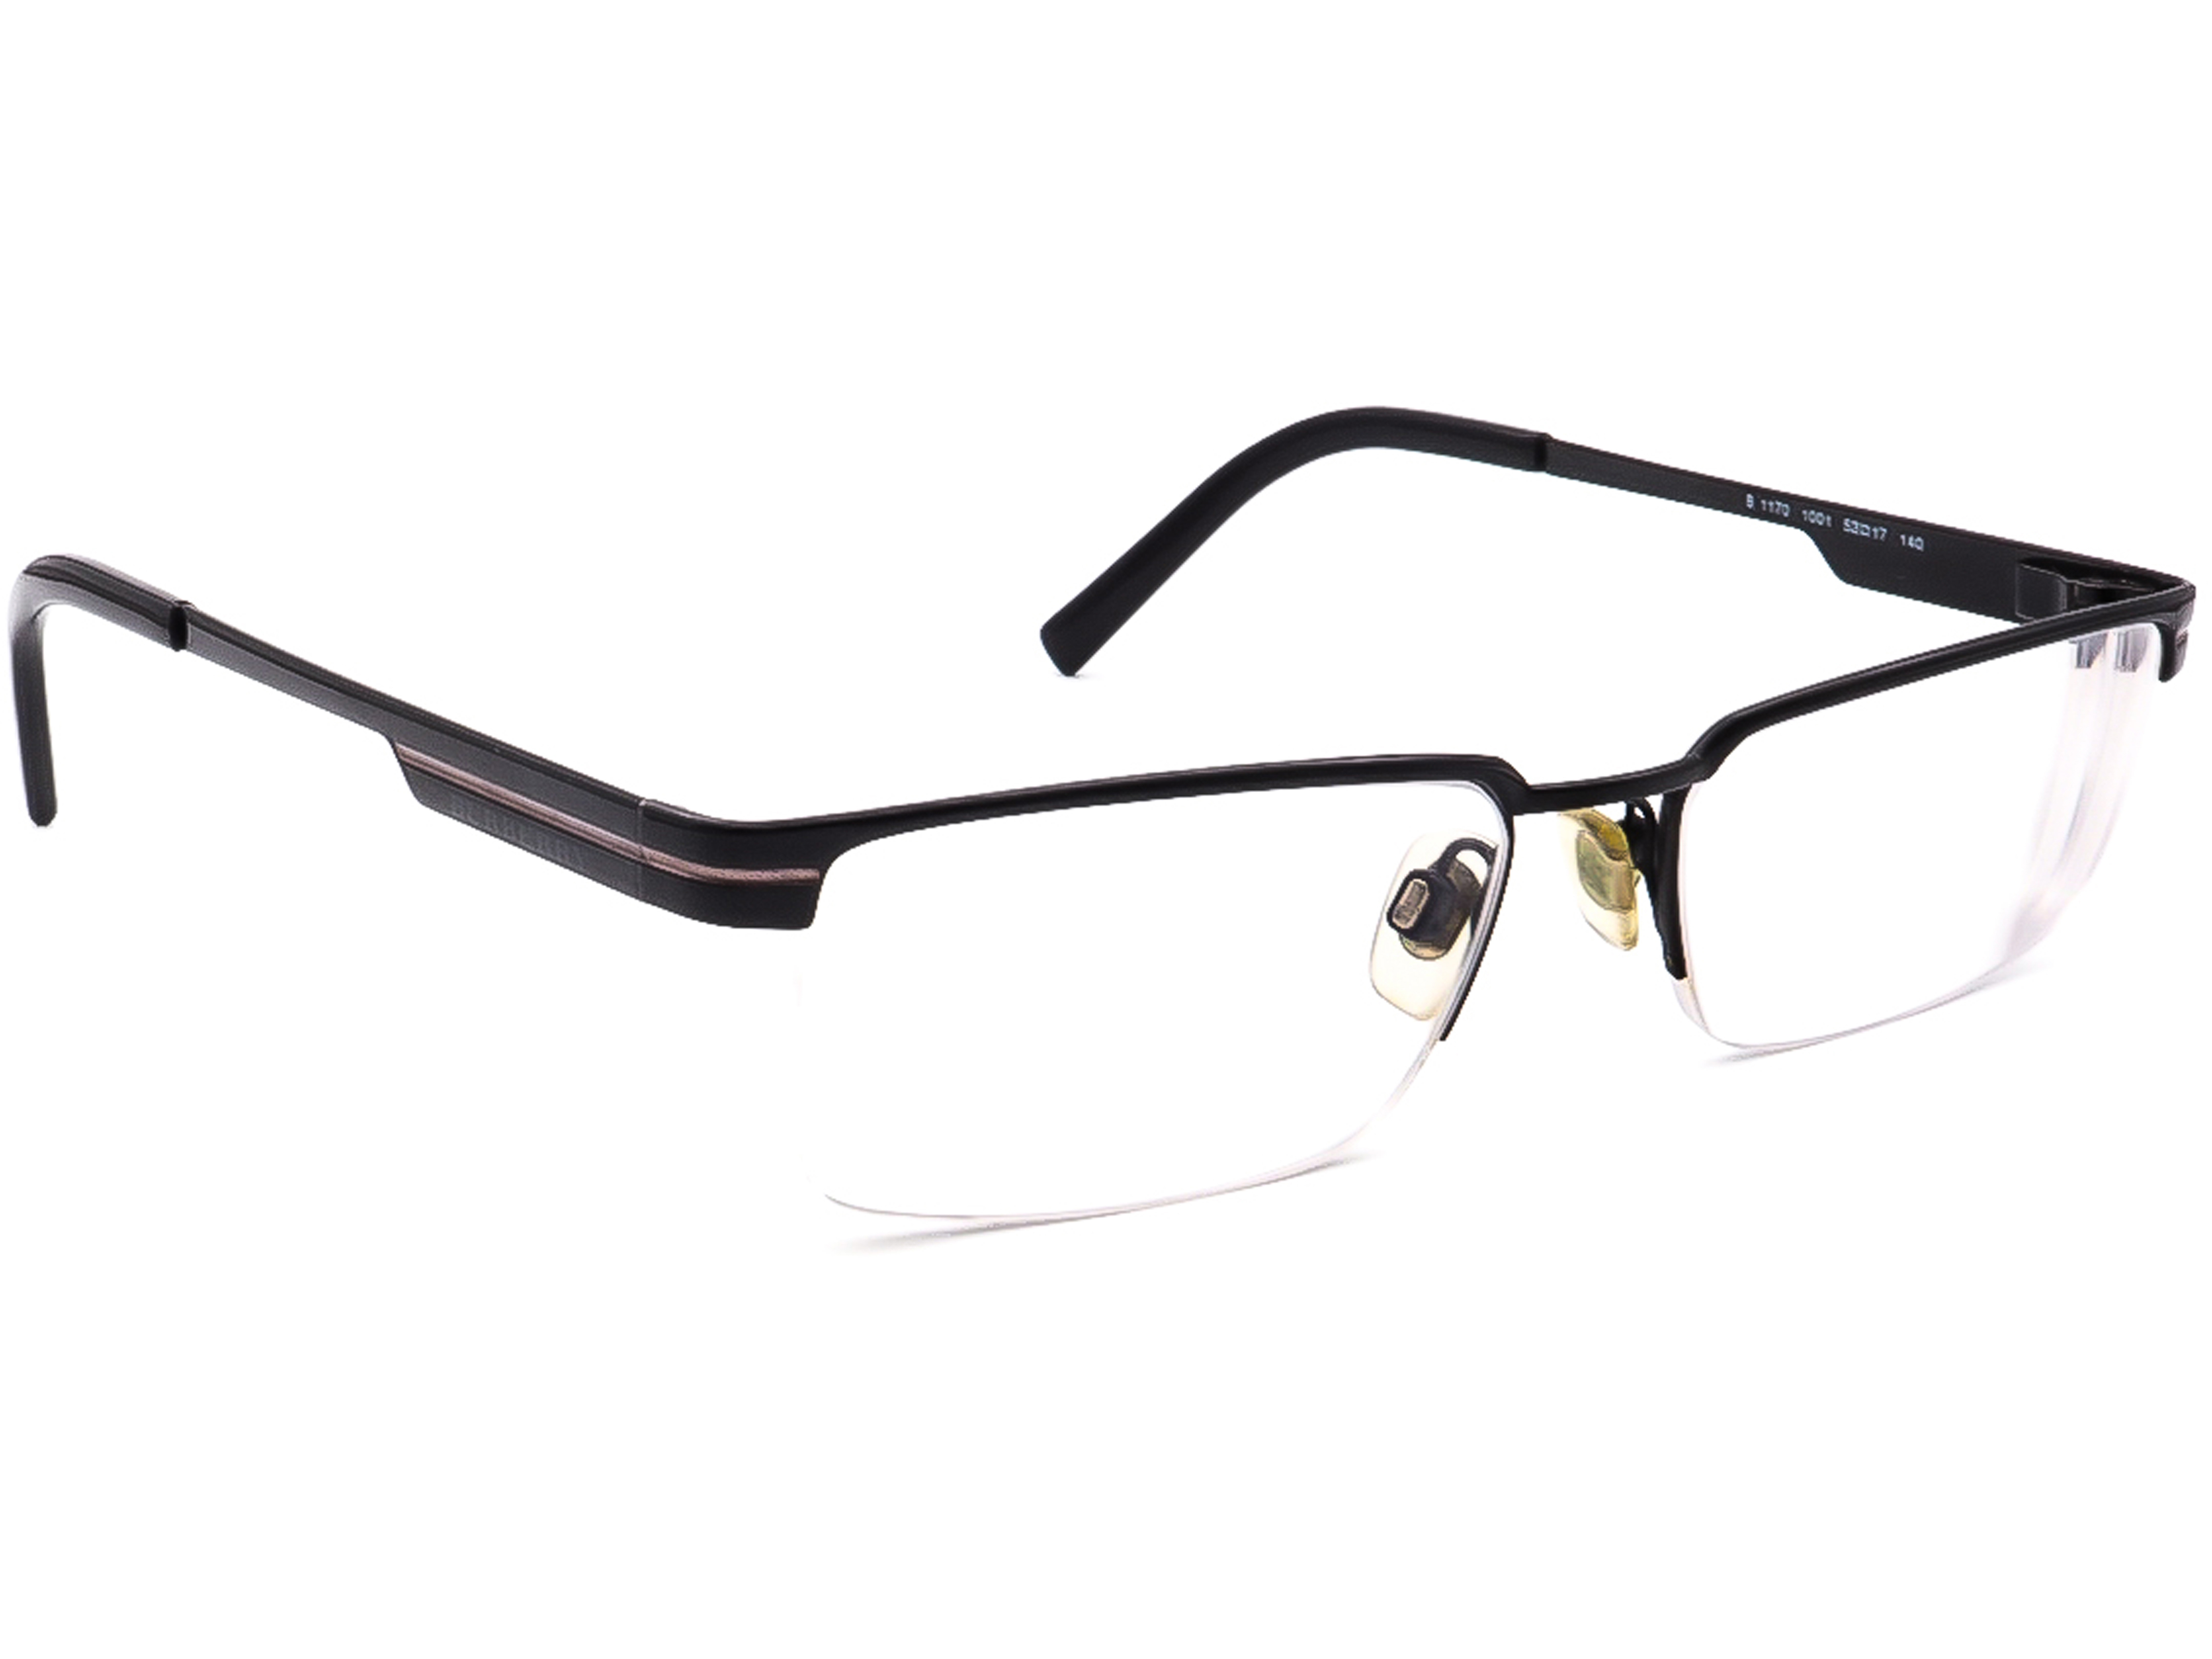 Burberry B 1170 1001 Eyeglasses